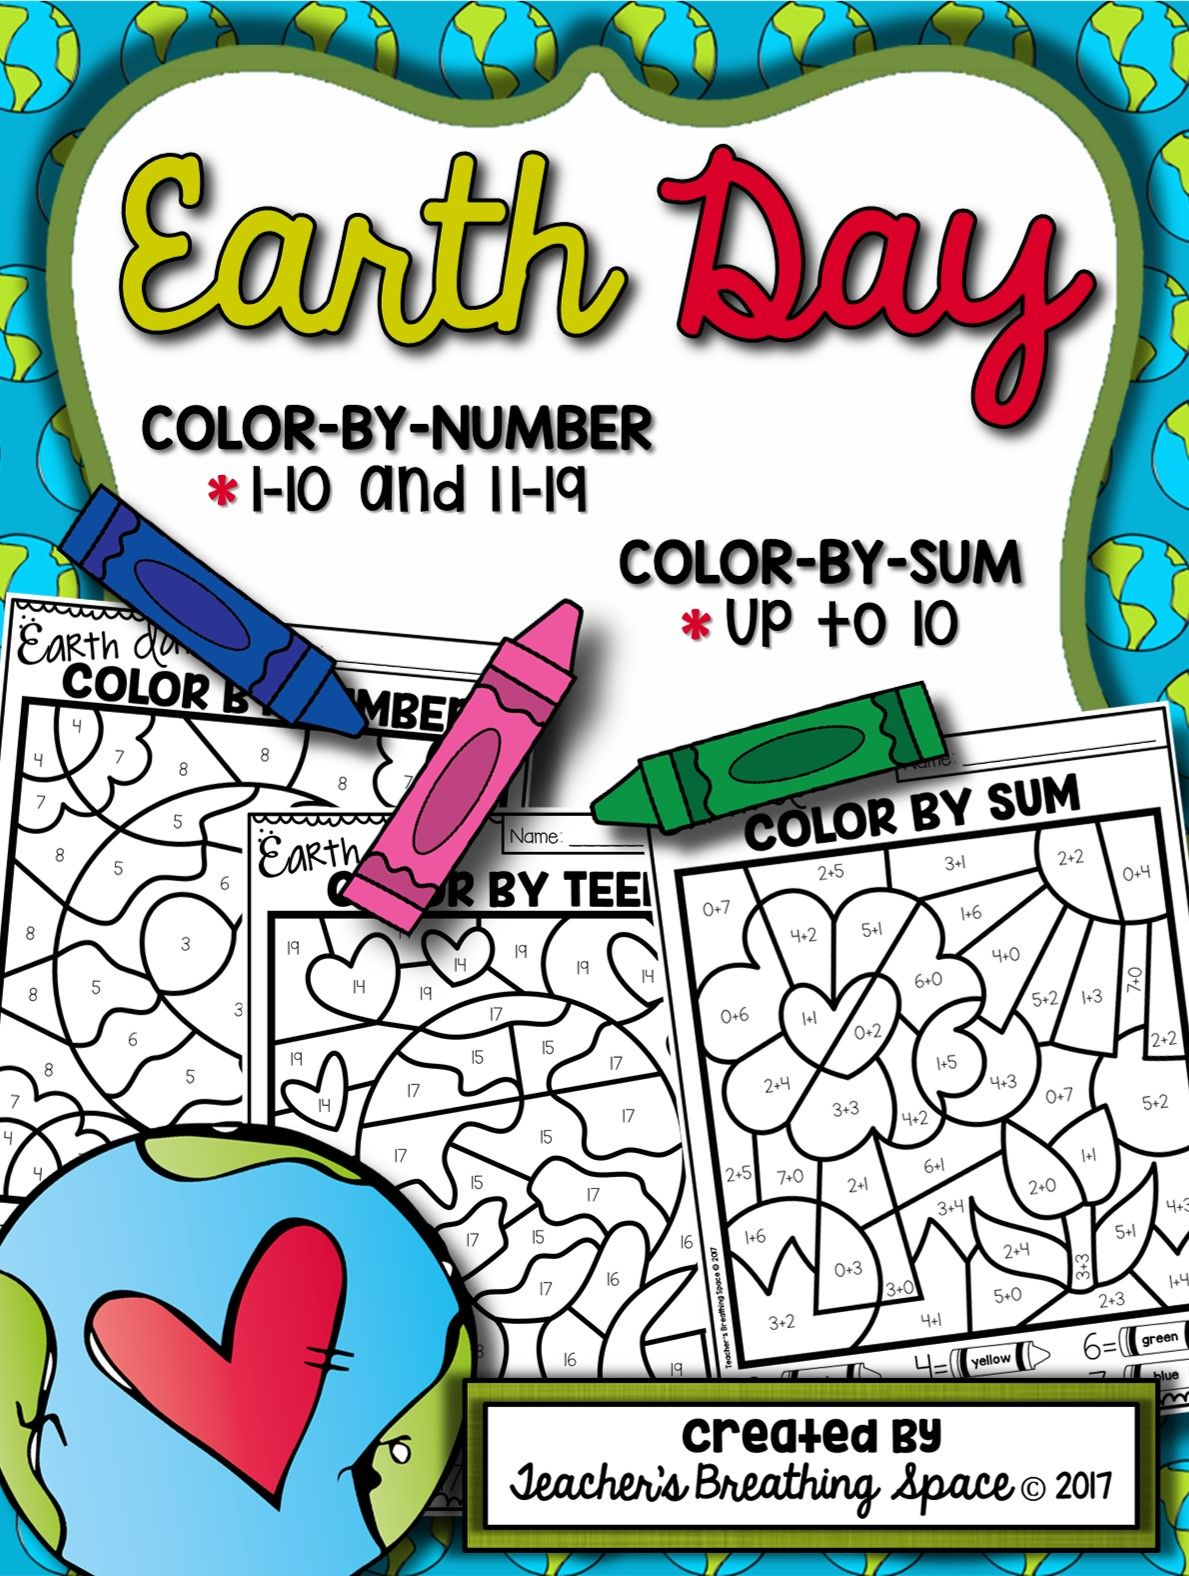 earth day color by number 1 10 u0026 11 19 and color by sum up to 10